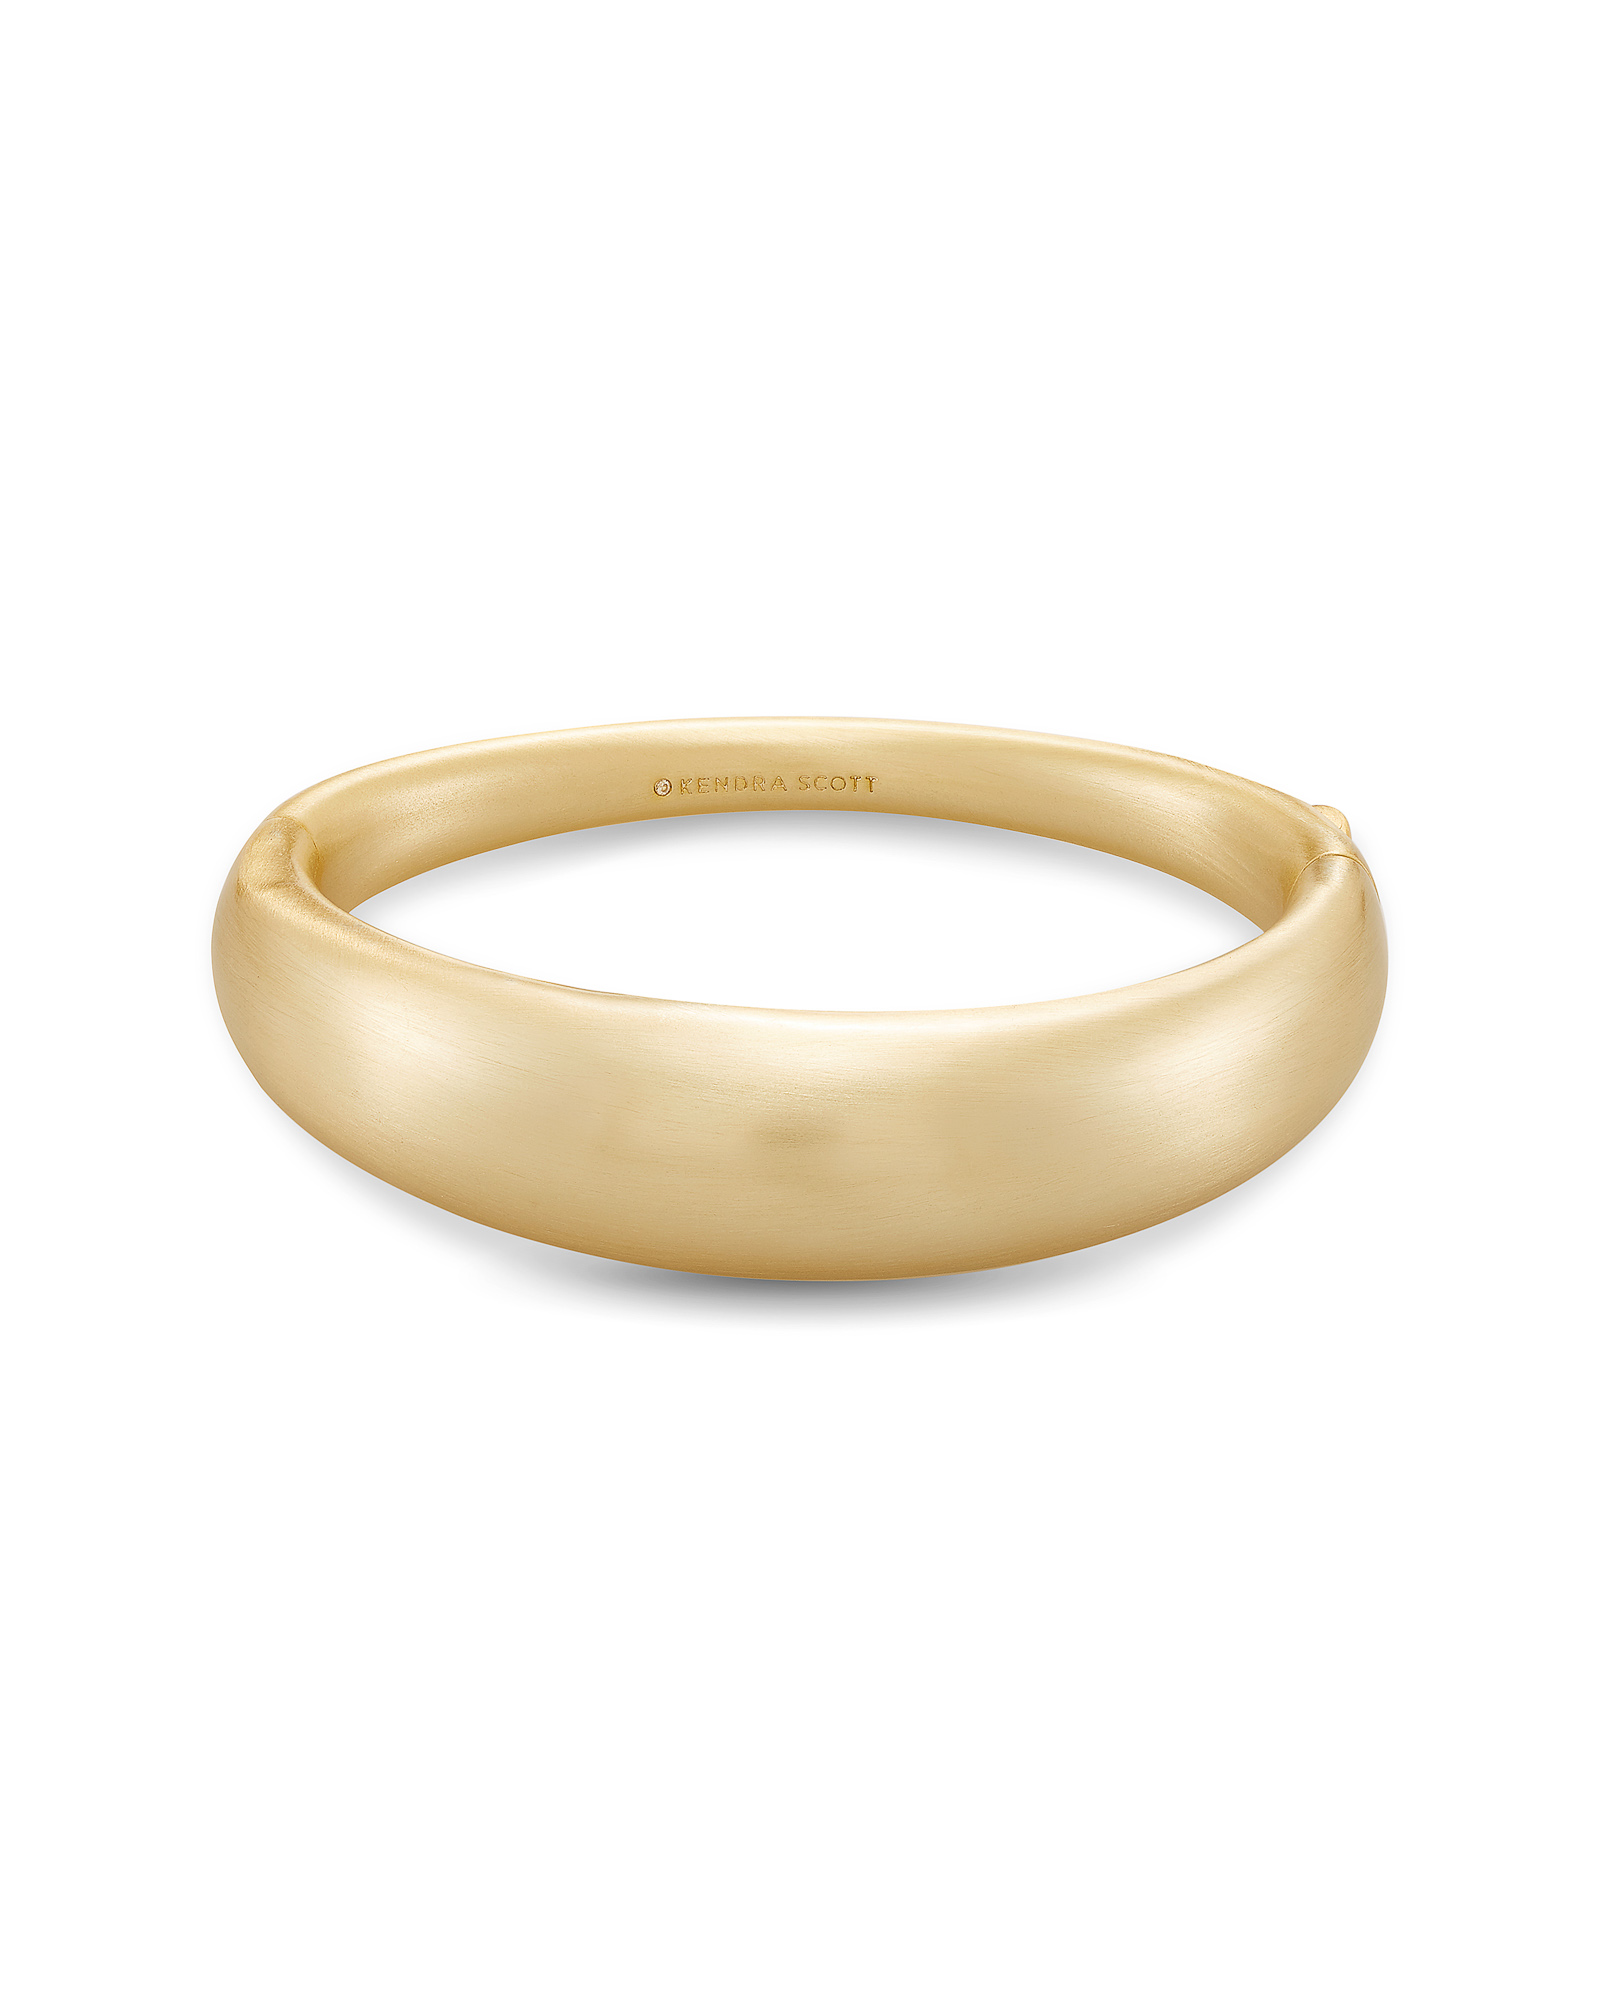 Kaia Bangle Bracelet in Gold